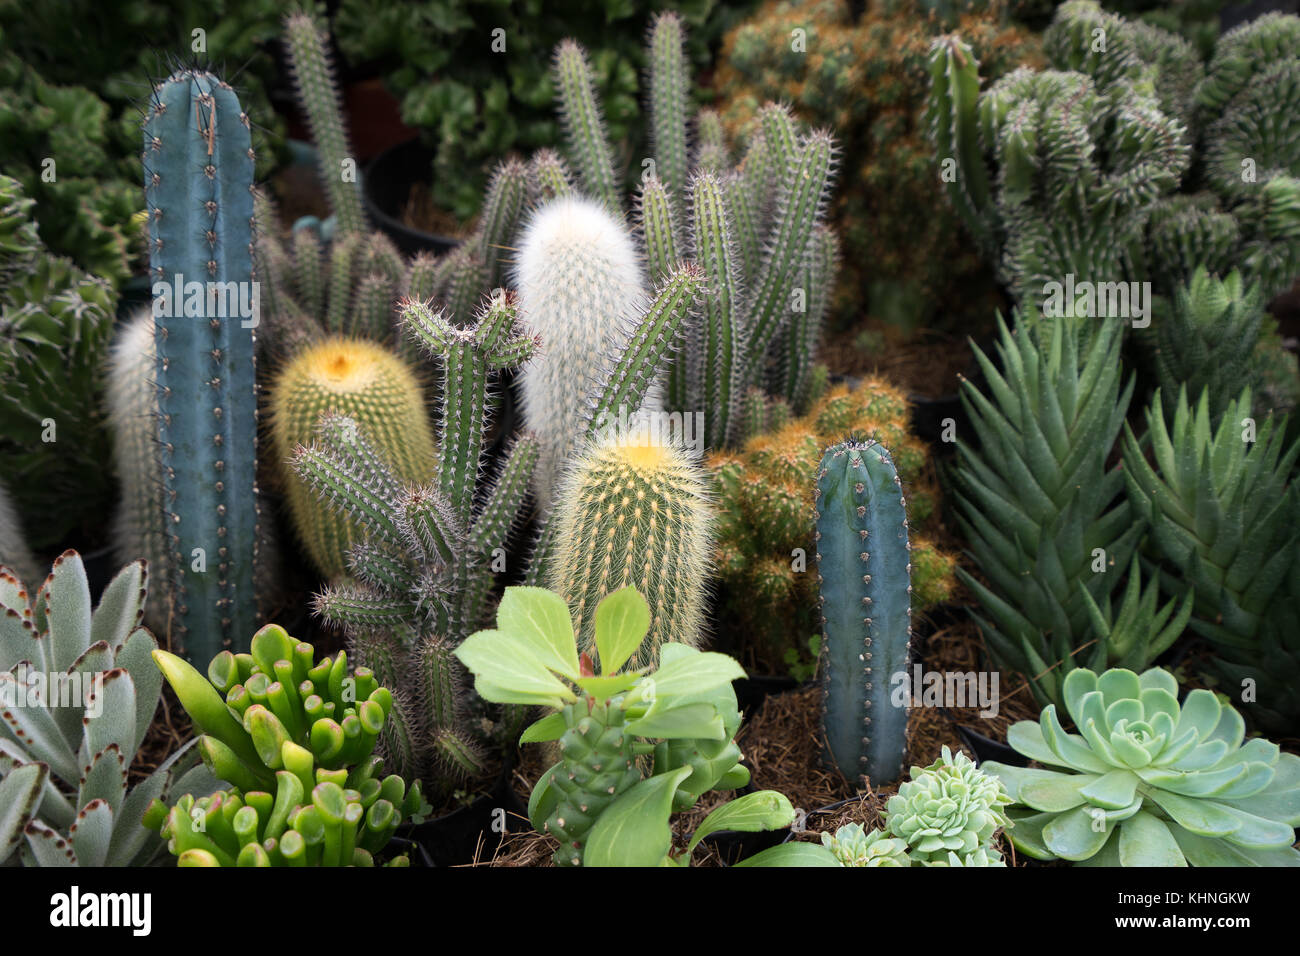 potted plants variety - Stock Image